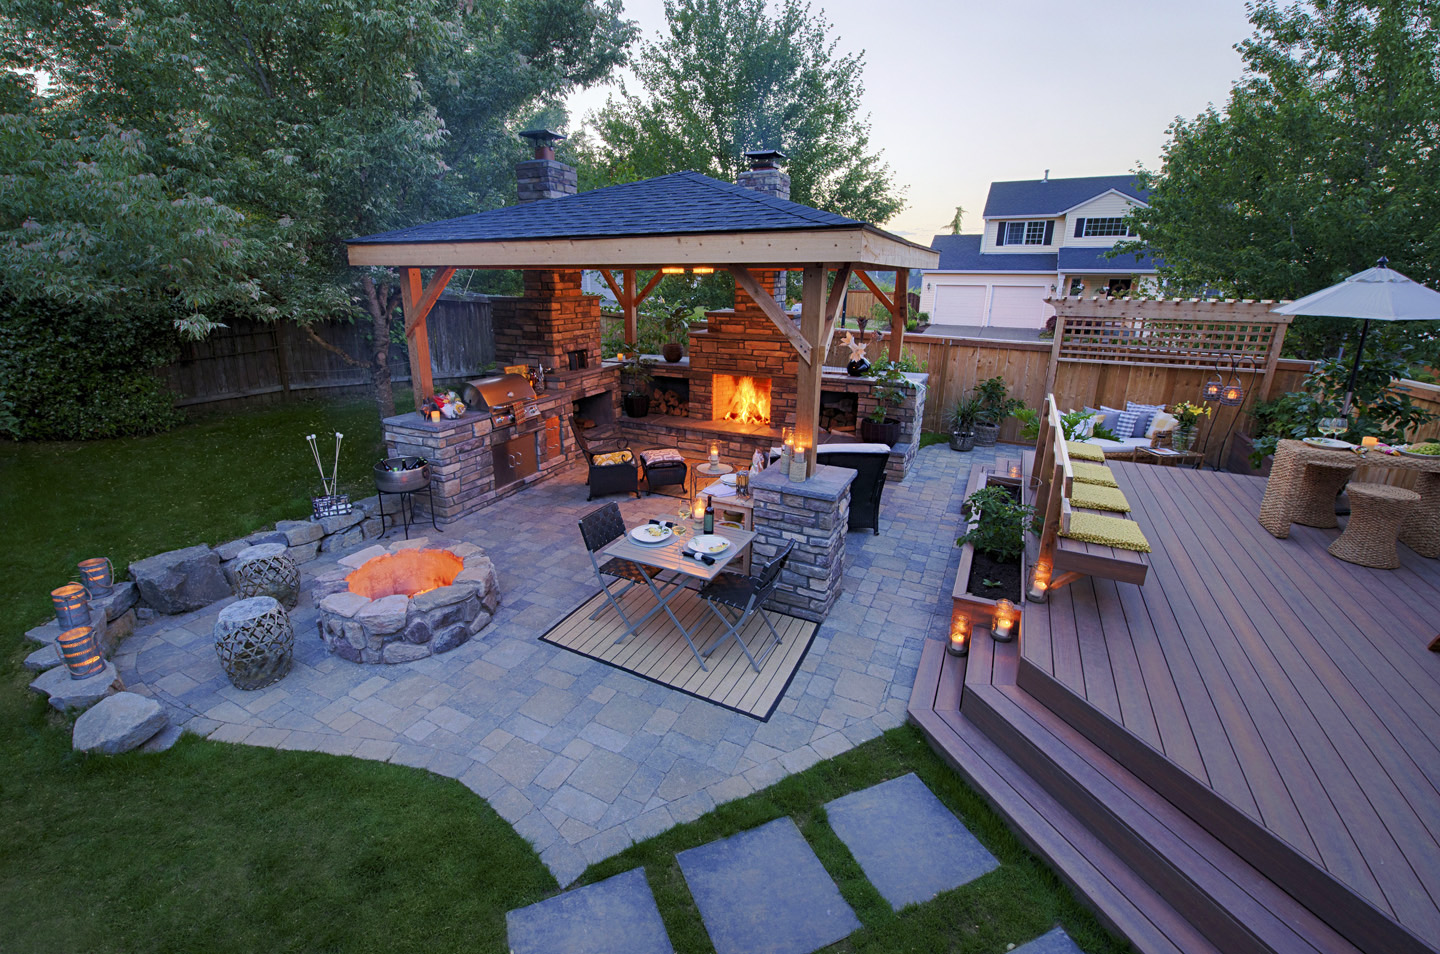 Backyard Deck Ideas - Paradise Restored Landscaping on Covered Back Deck Designs id=93198